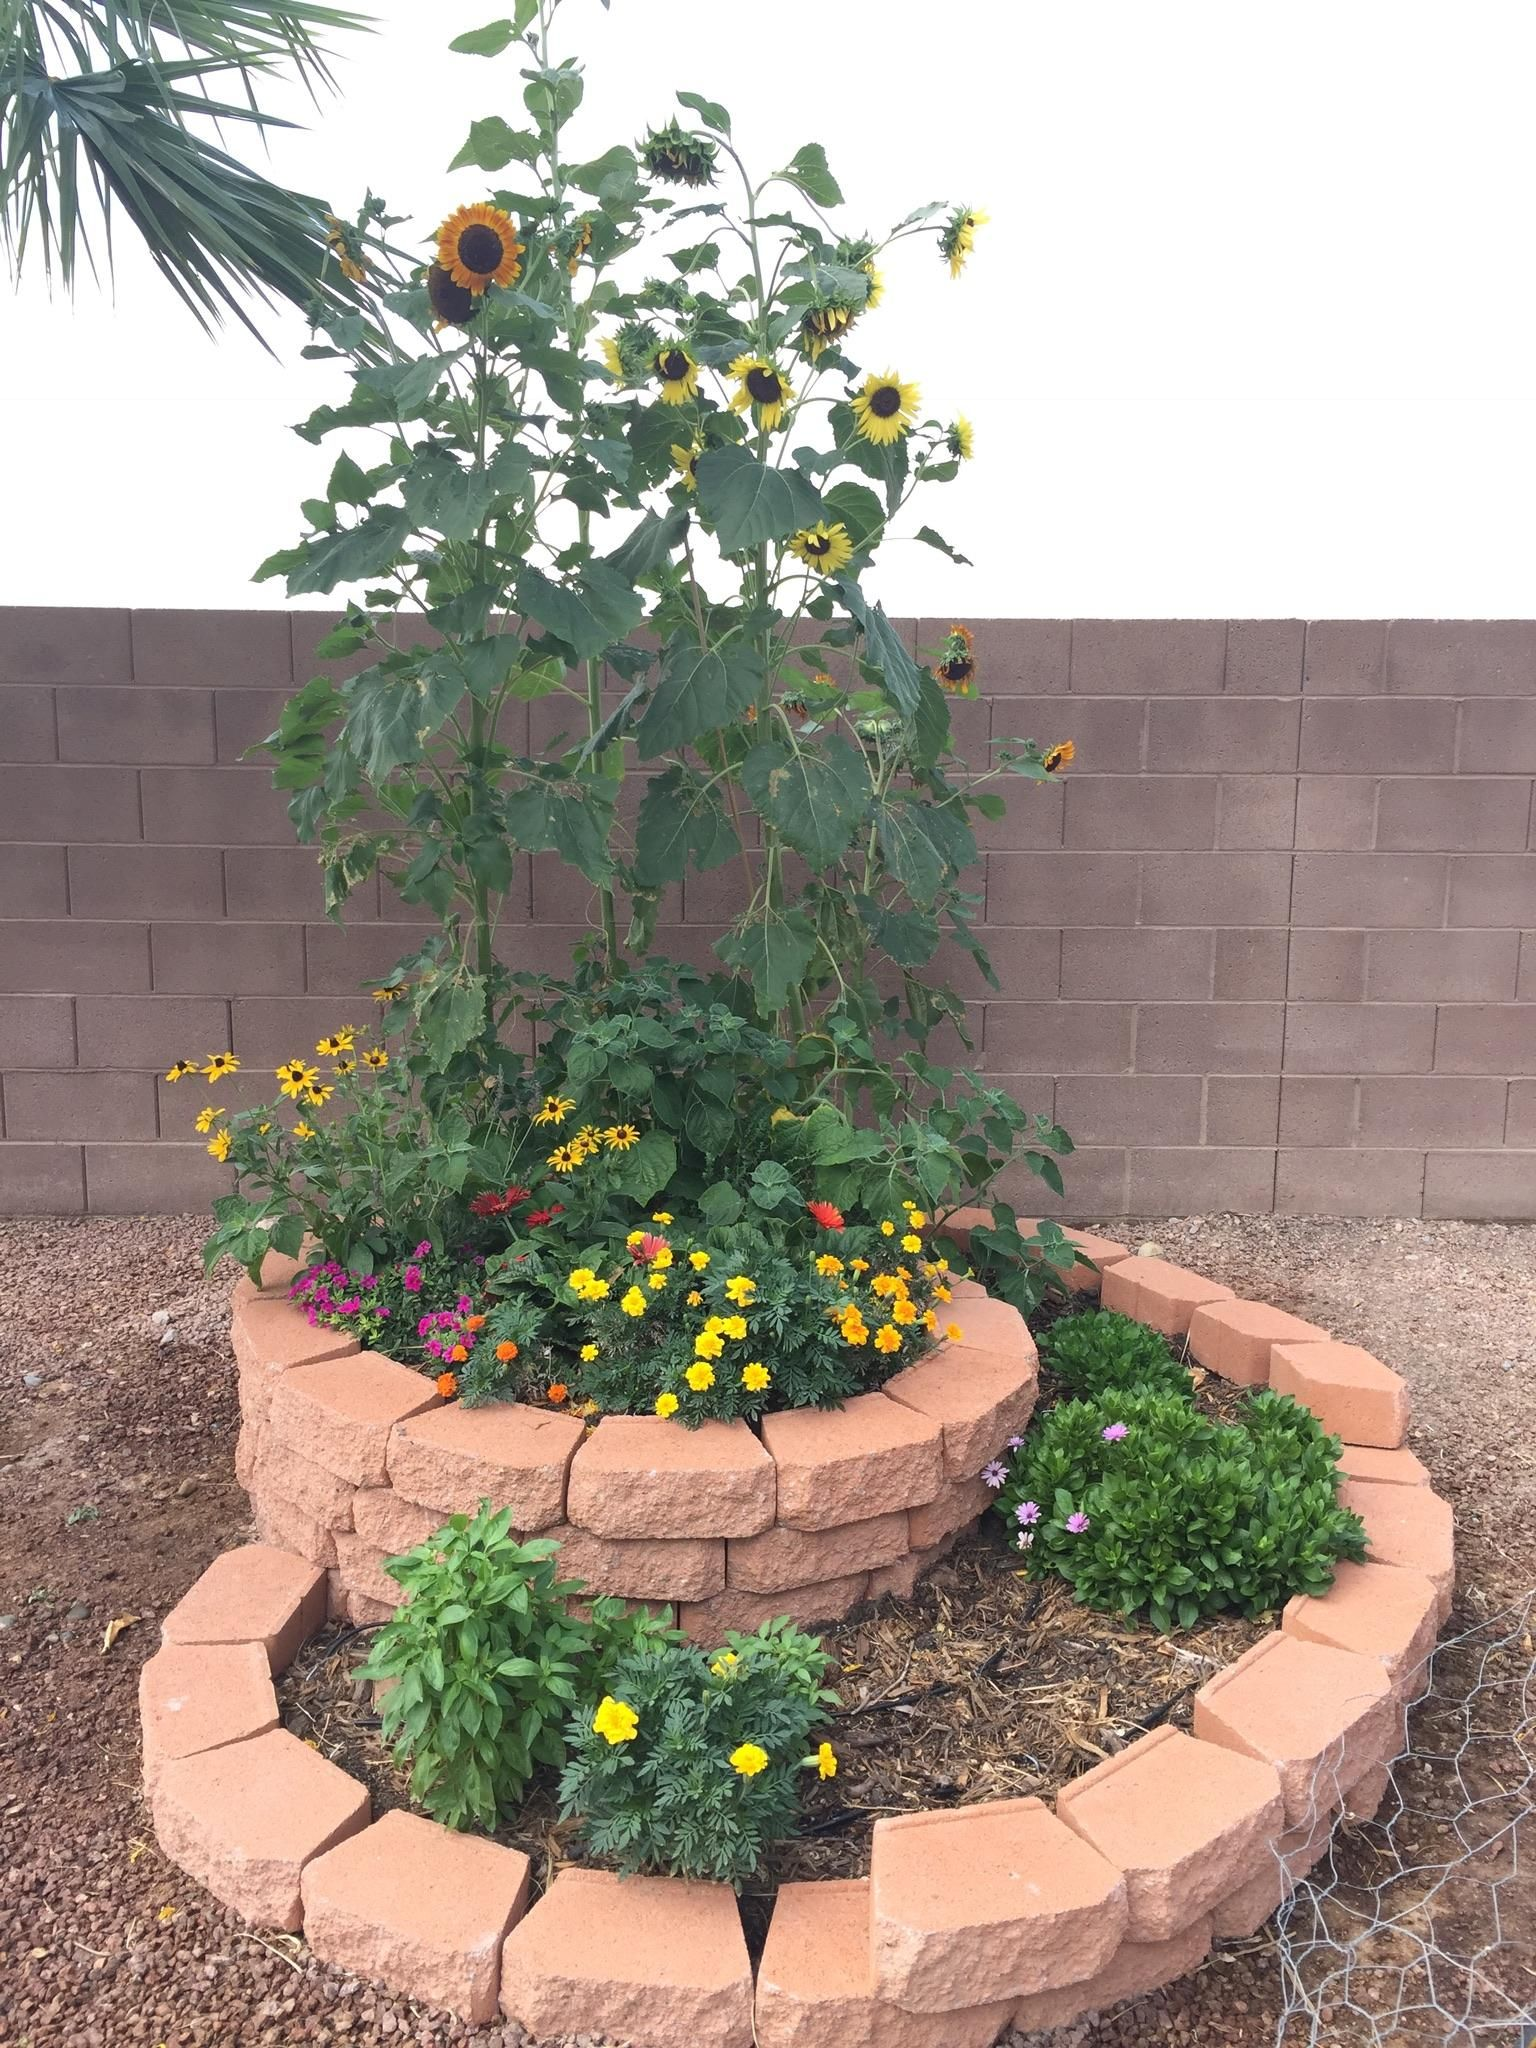 Spiral Flower And Herb Garden In Las Vegas #gardening #garden #DIY #home  #flowers #roses #nature #landscaping #horticulture